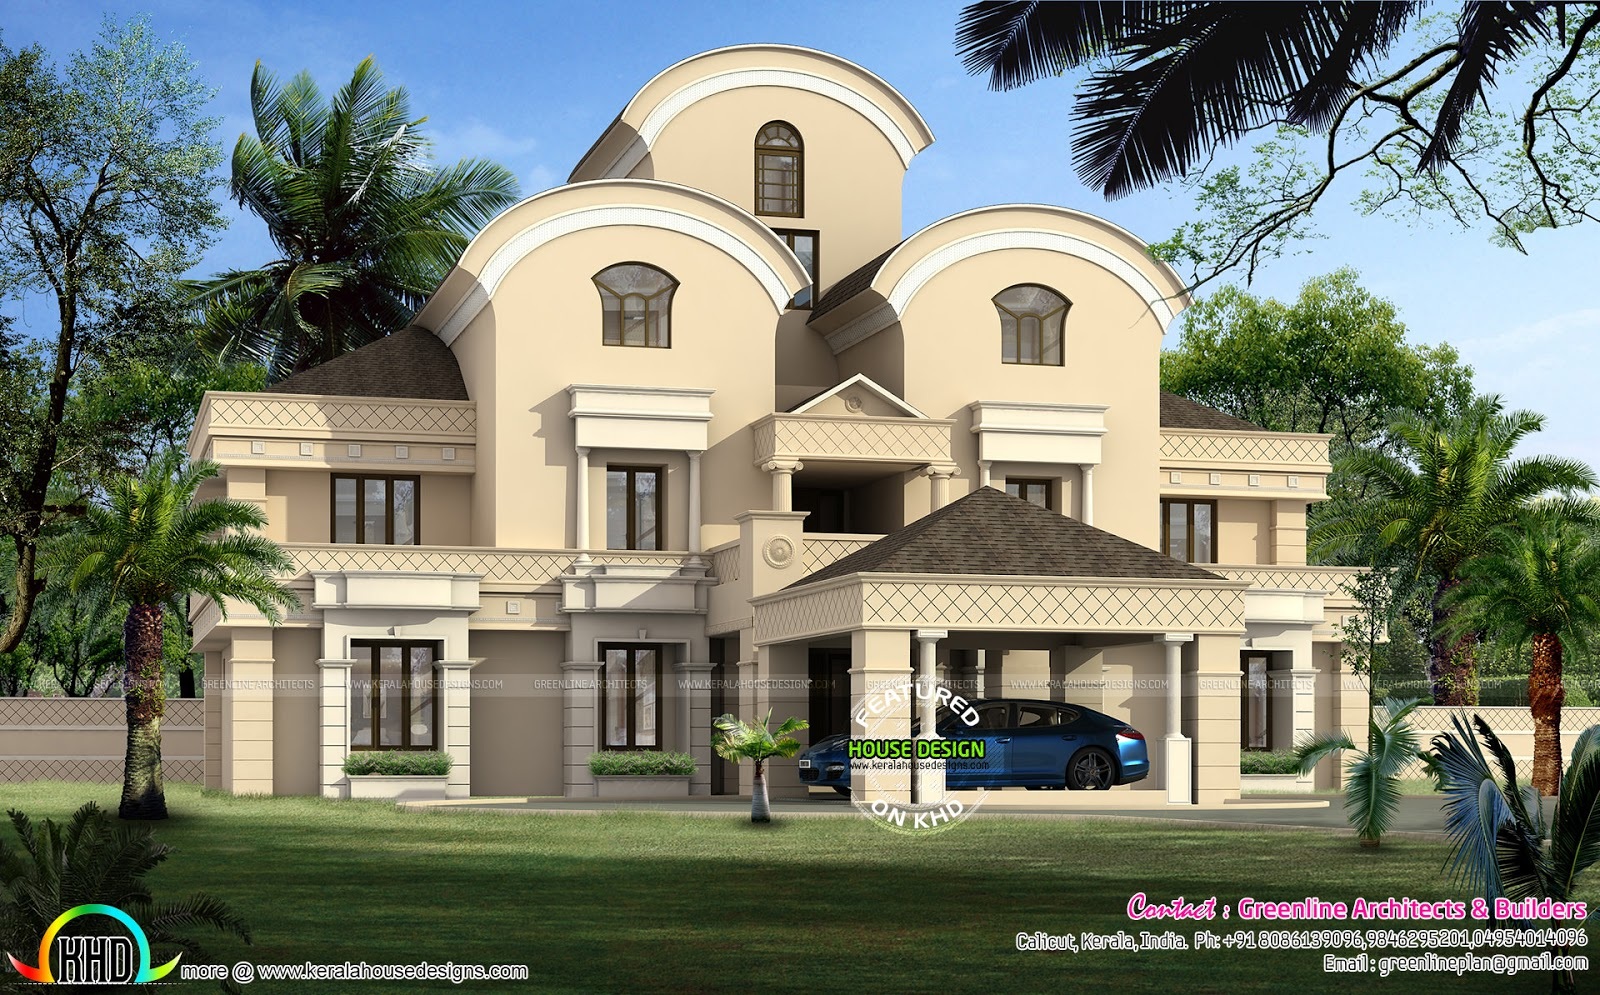 Luxury arabian style home design kerala home design and for Arabic home design